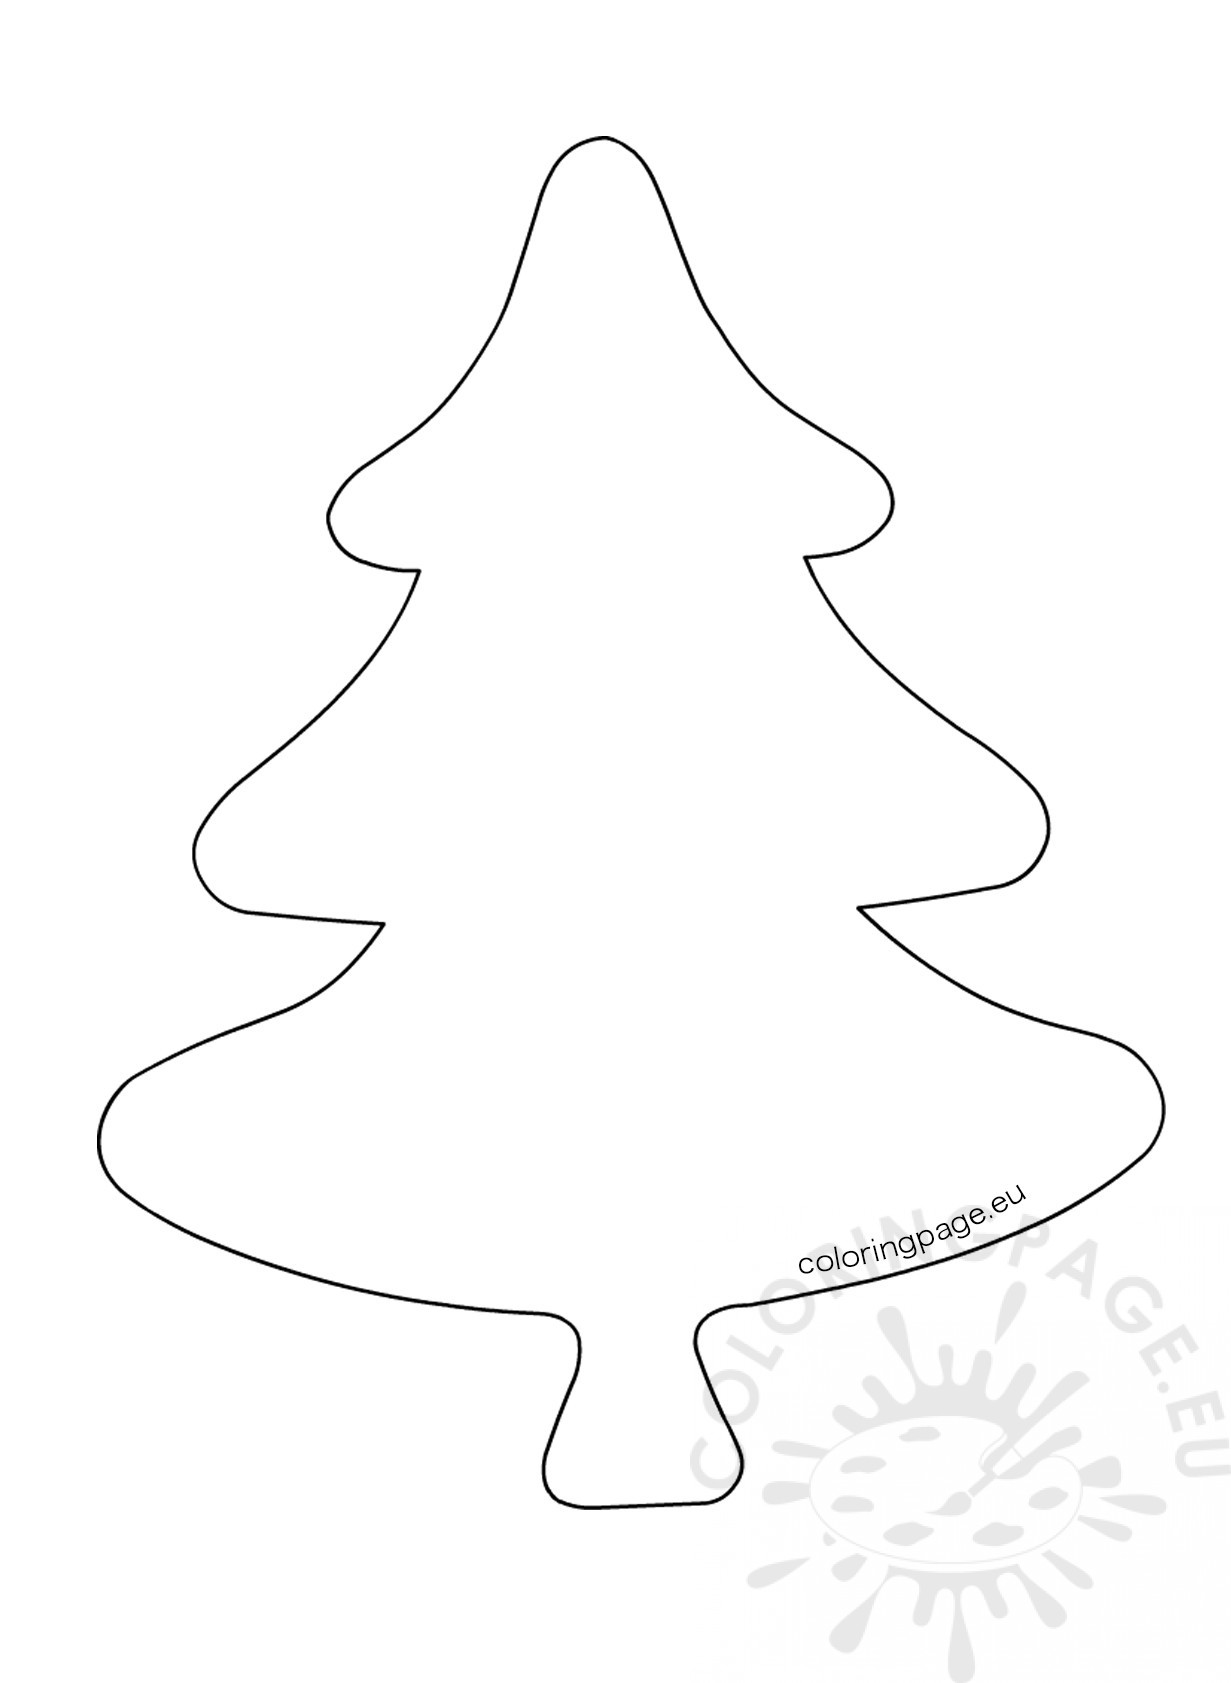 Felt Christmas Tree Ornament Template - Coloring Page